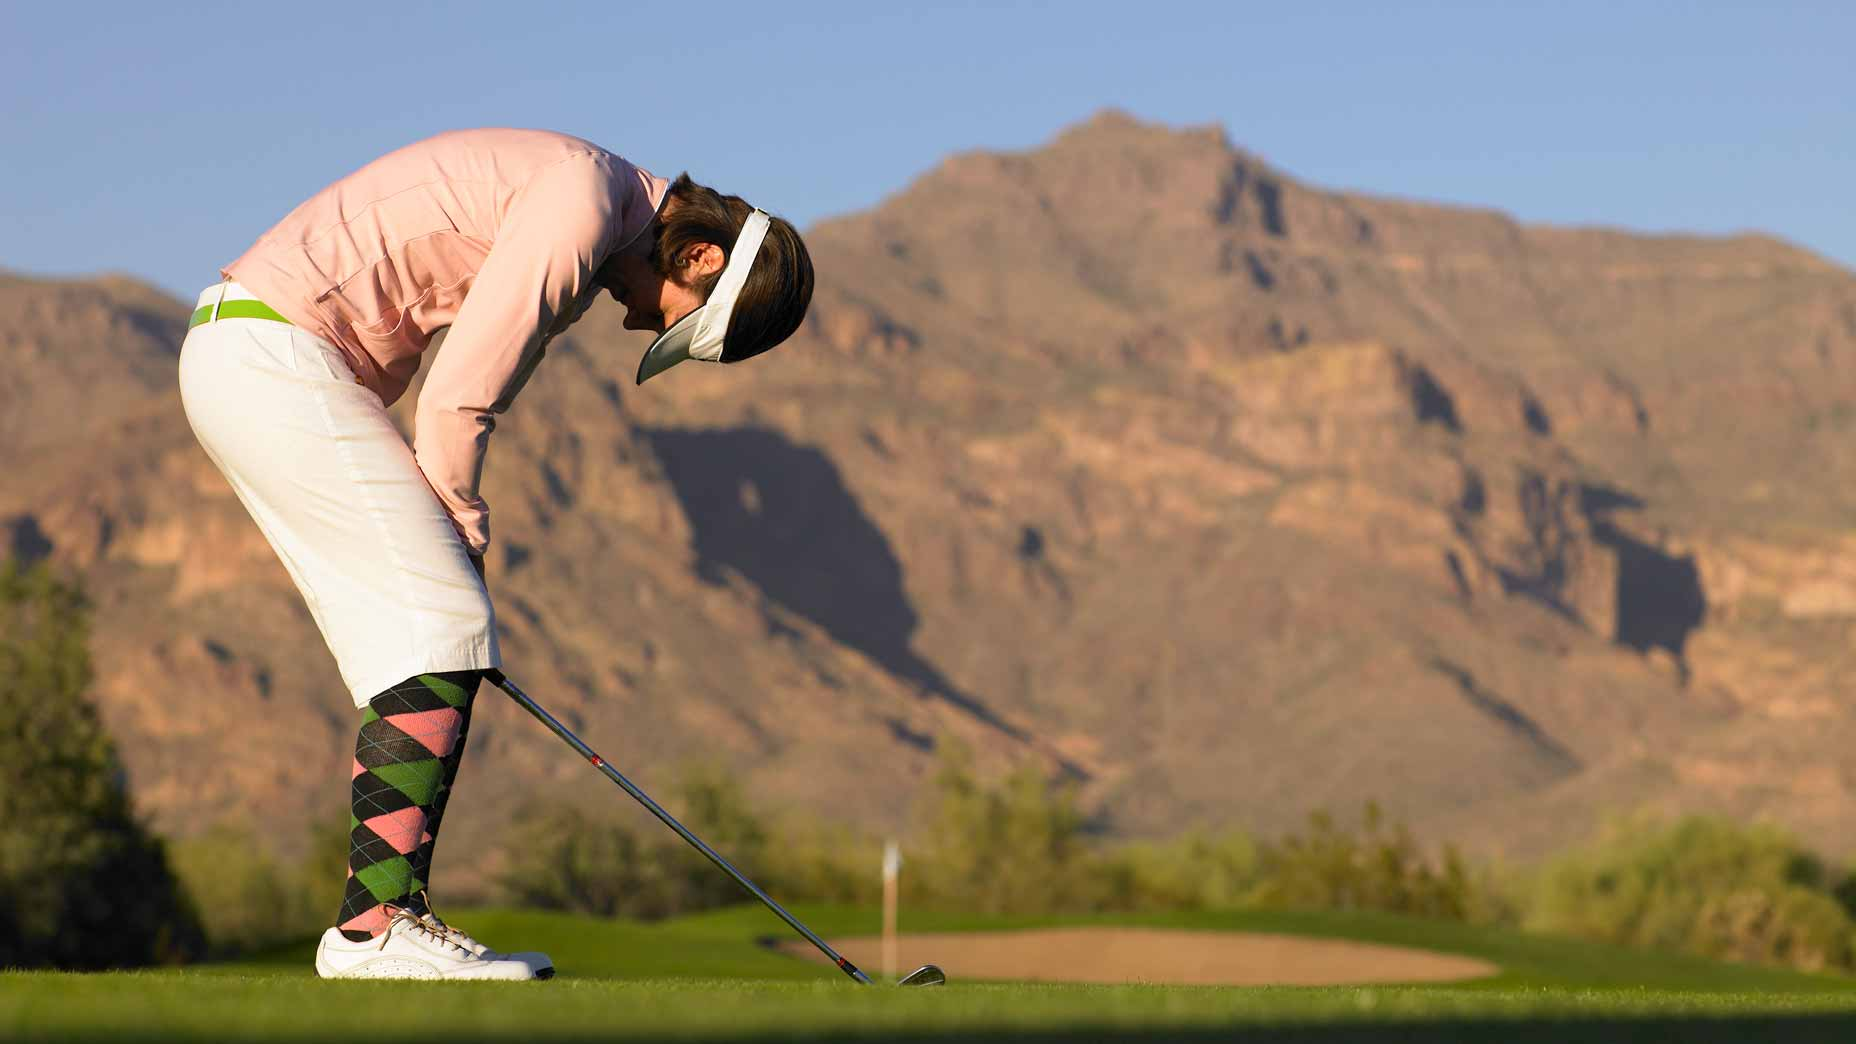 golfer is frustrated